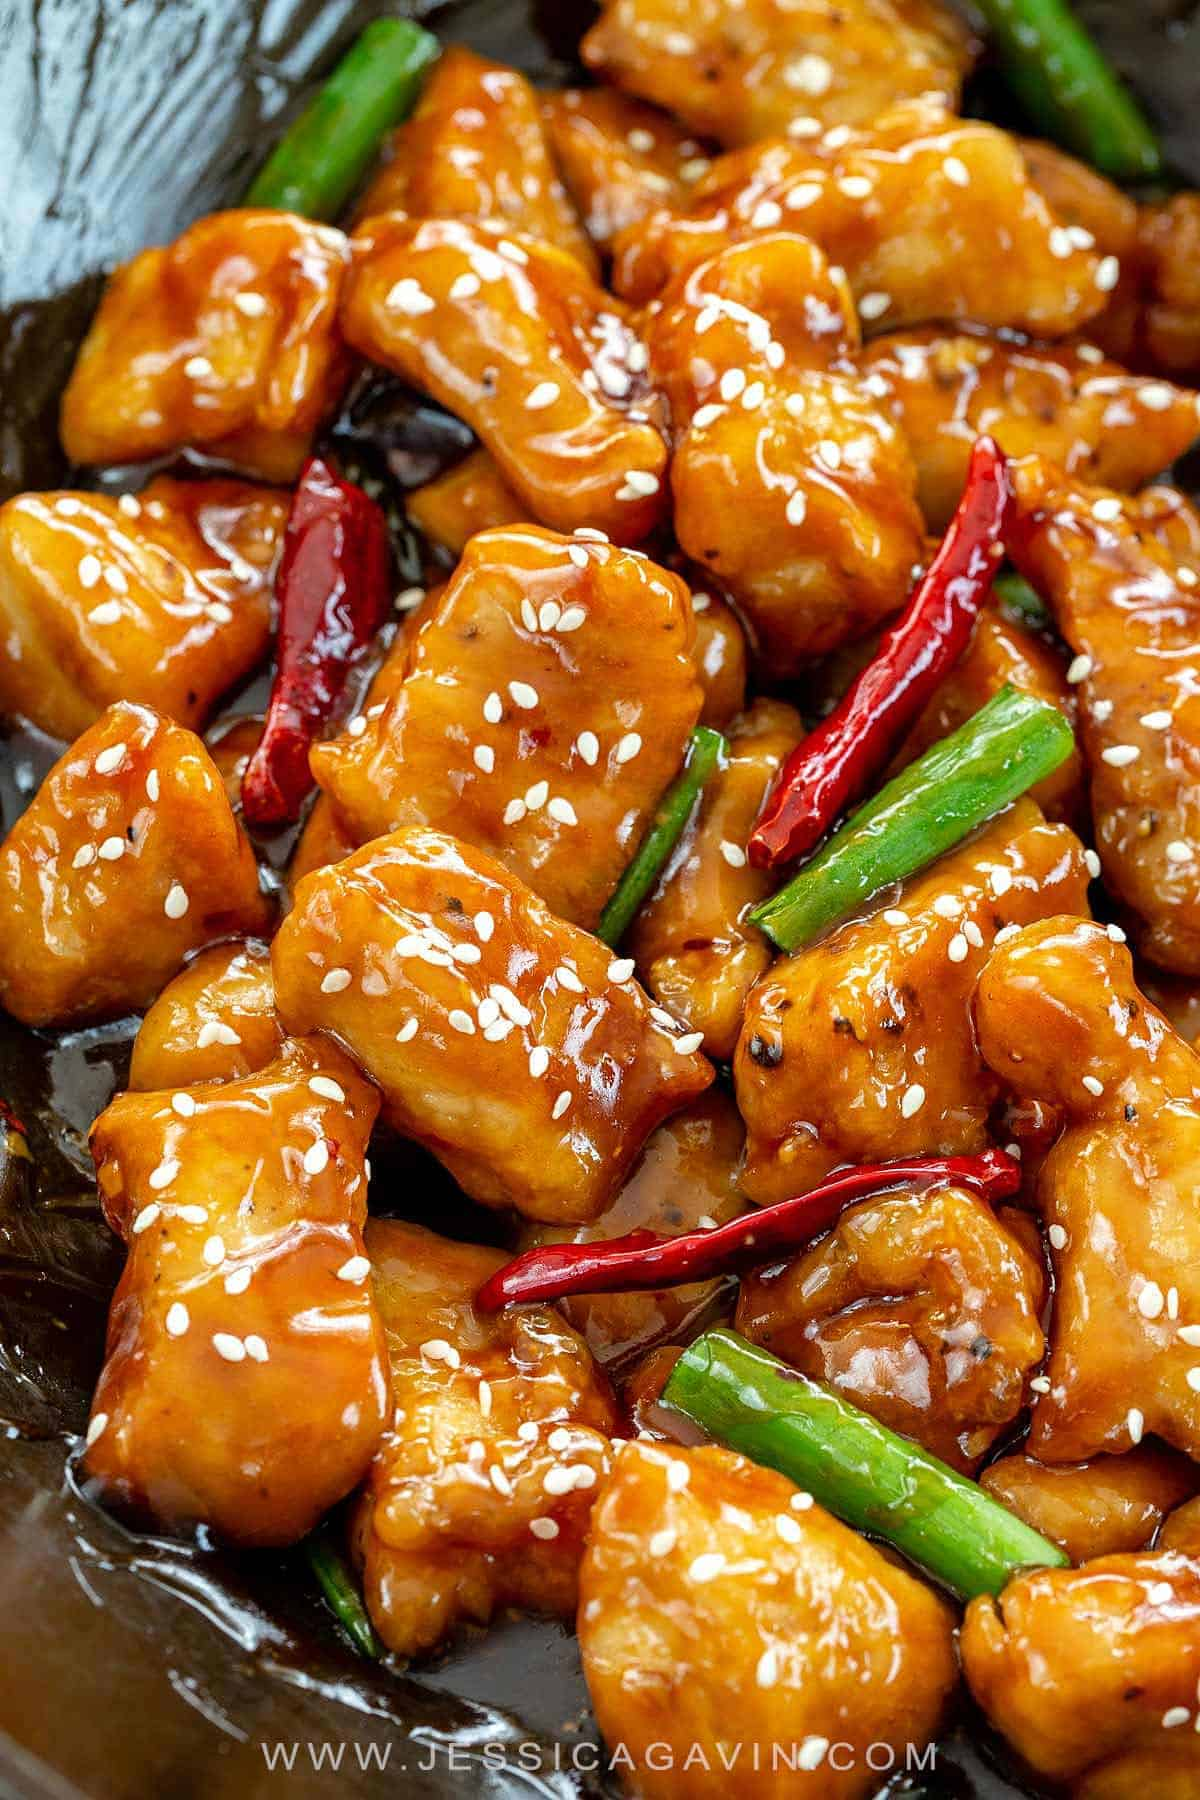 General Tso's chicken is a popular Chinese dish made with lean white meat tossed in a sticky coating and stir fried with a spicy chili sauce. #chinese #pandaexpress #stirfry #chicken #takeout